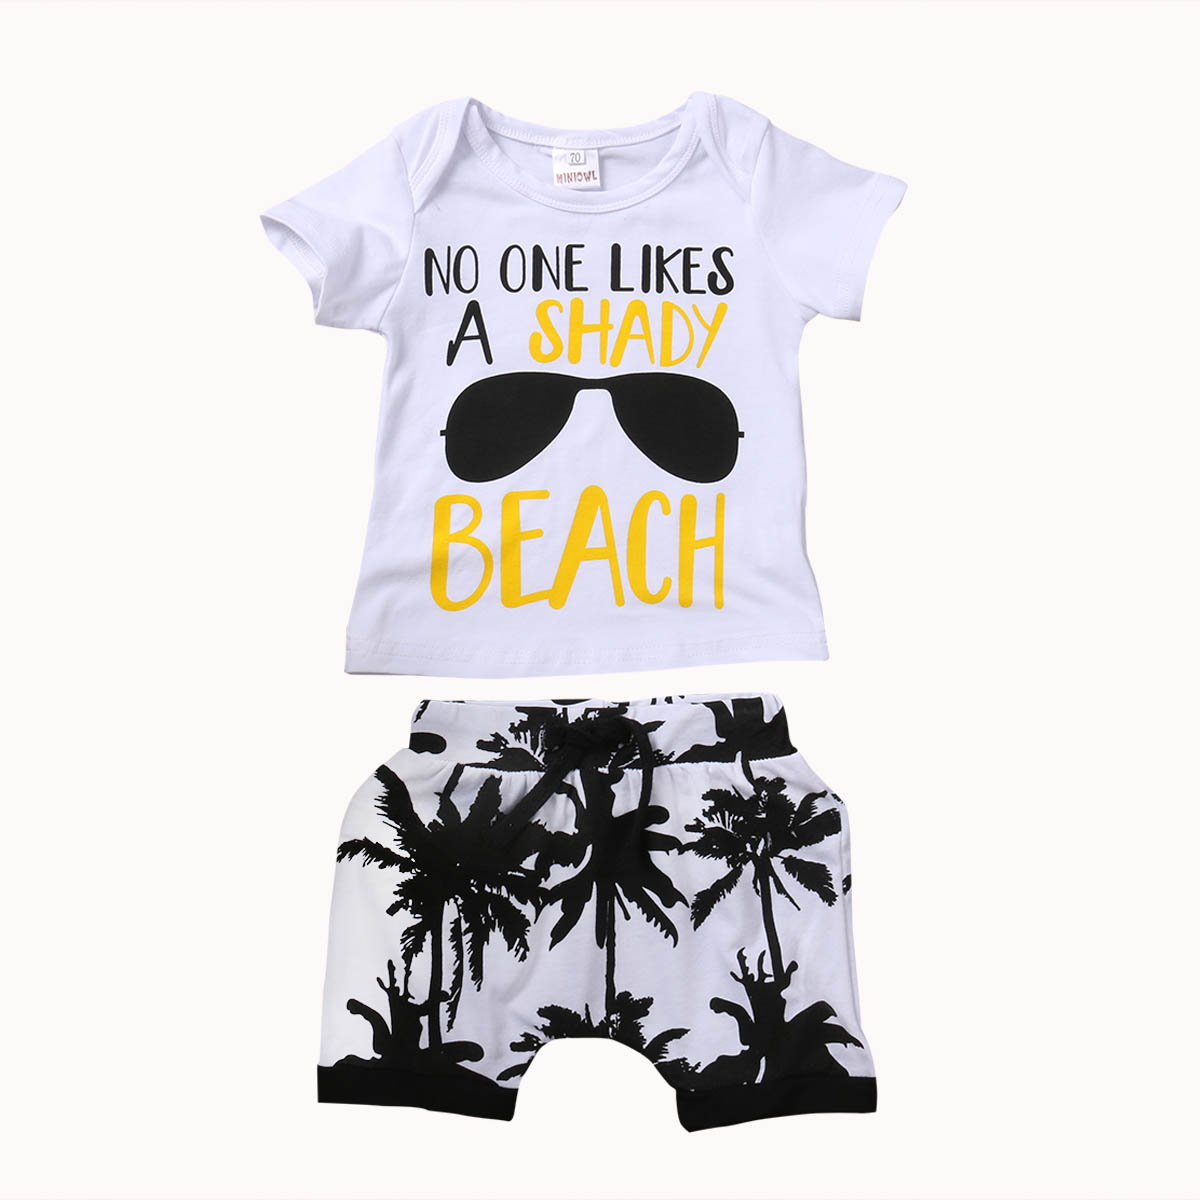 2 Pieces Toddler Newborn Infant Baby Kids Boy Outfit T-shirt Tops+Pants Shorts Cotton Clothes Set 0-3T 2017 newborn baby boy clothes summer short sleeve mama s boy cotton t shirt tops pant 2pcs outfit toddler kids clothing set